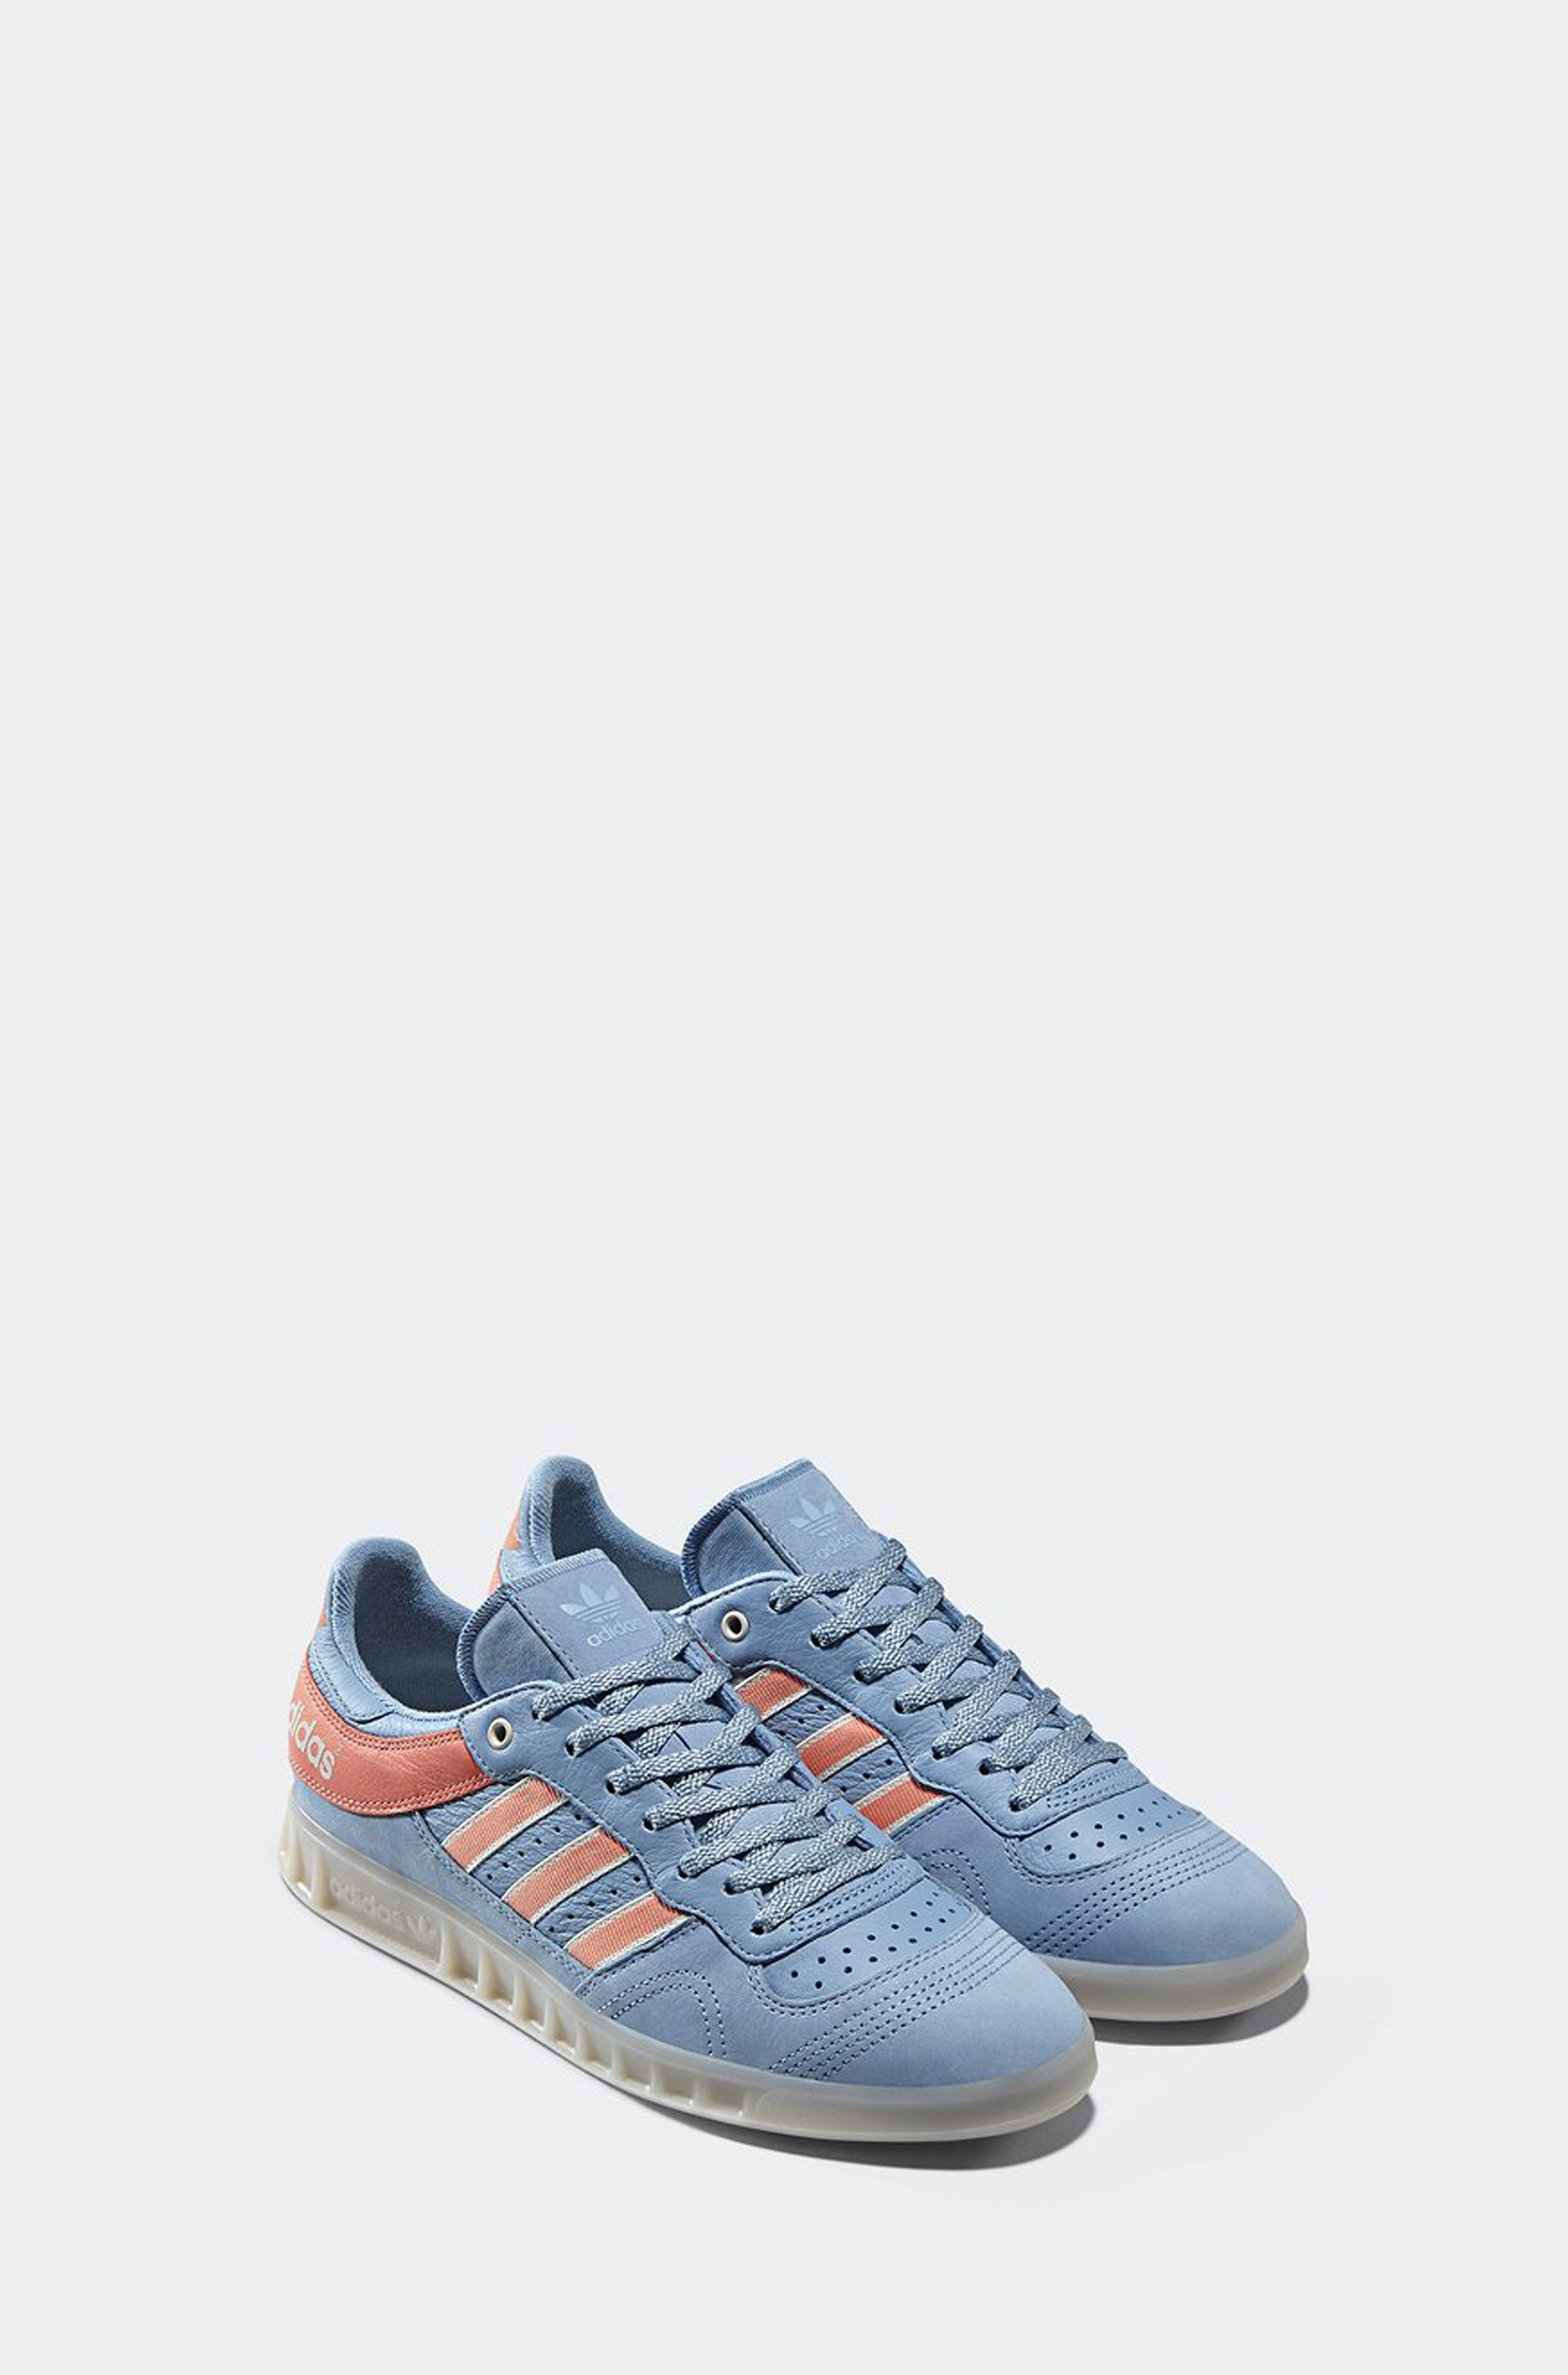 designer fashion bc8be 6698d Adidas X Oyster Handball Top Sneaker (Ash Blue)